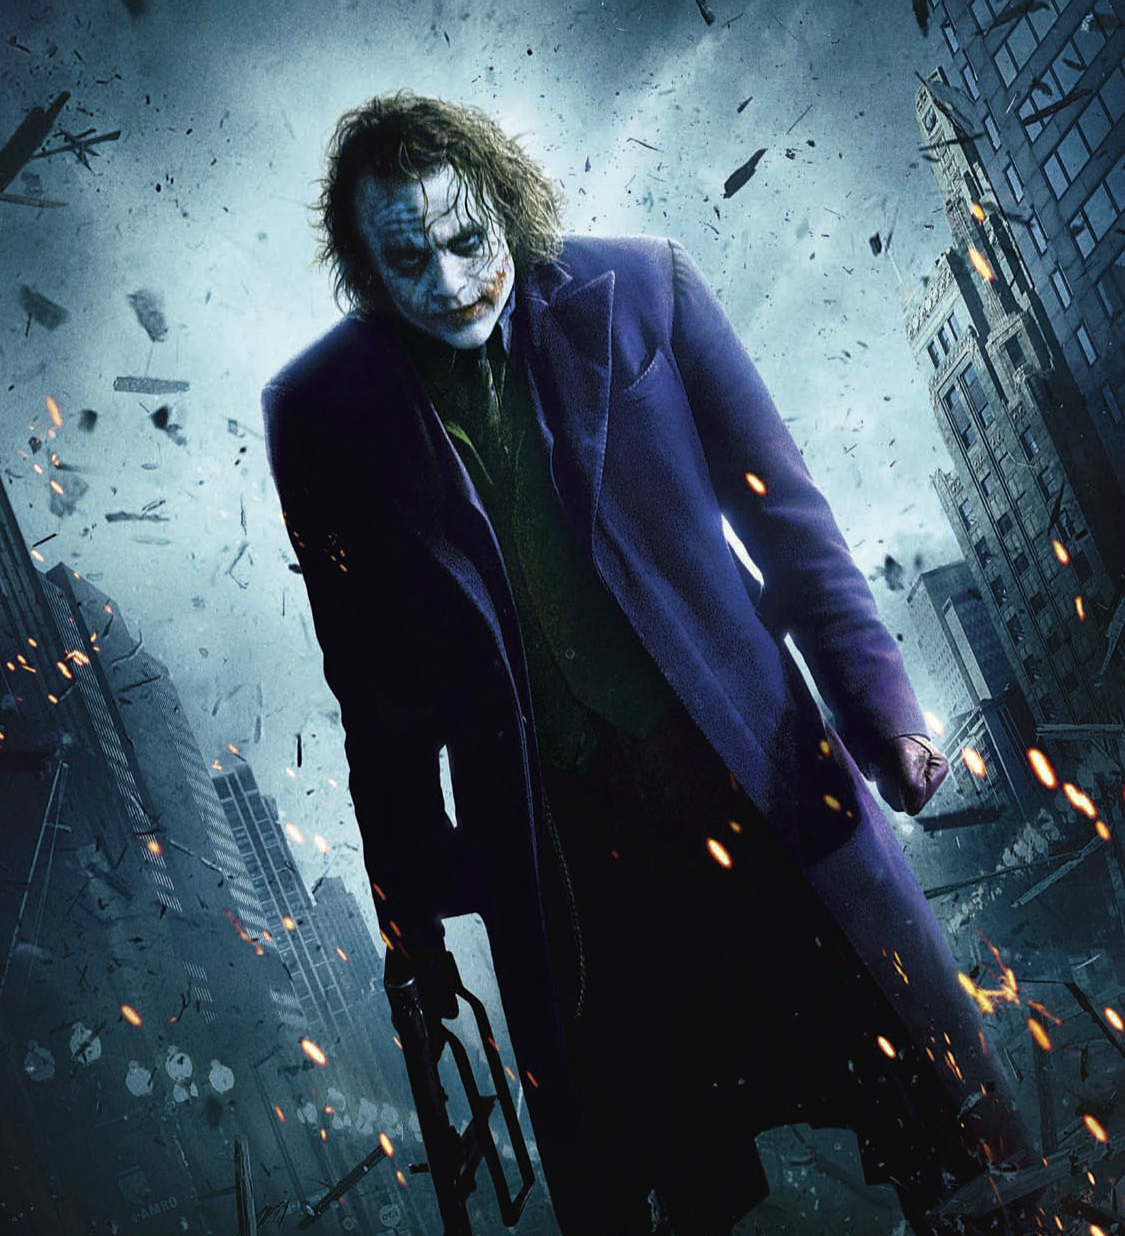 Joker nolanverse villains wiki fandom powered by wikia for Joker immagini hd